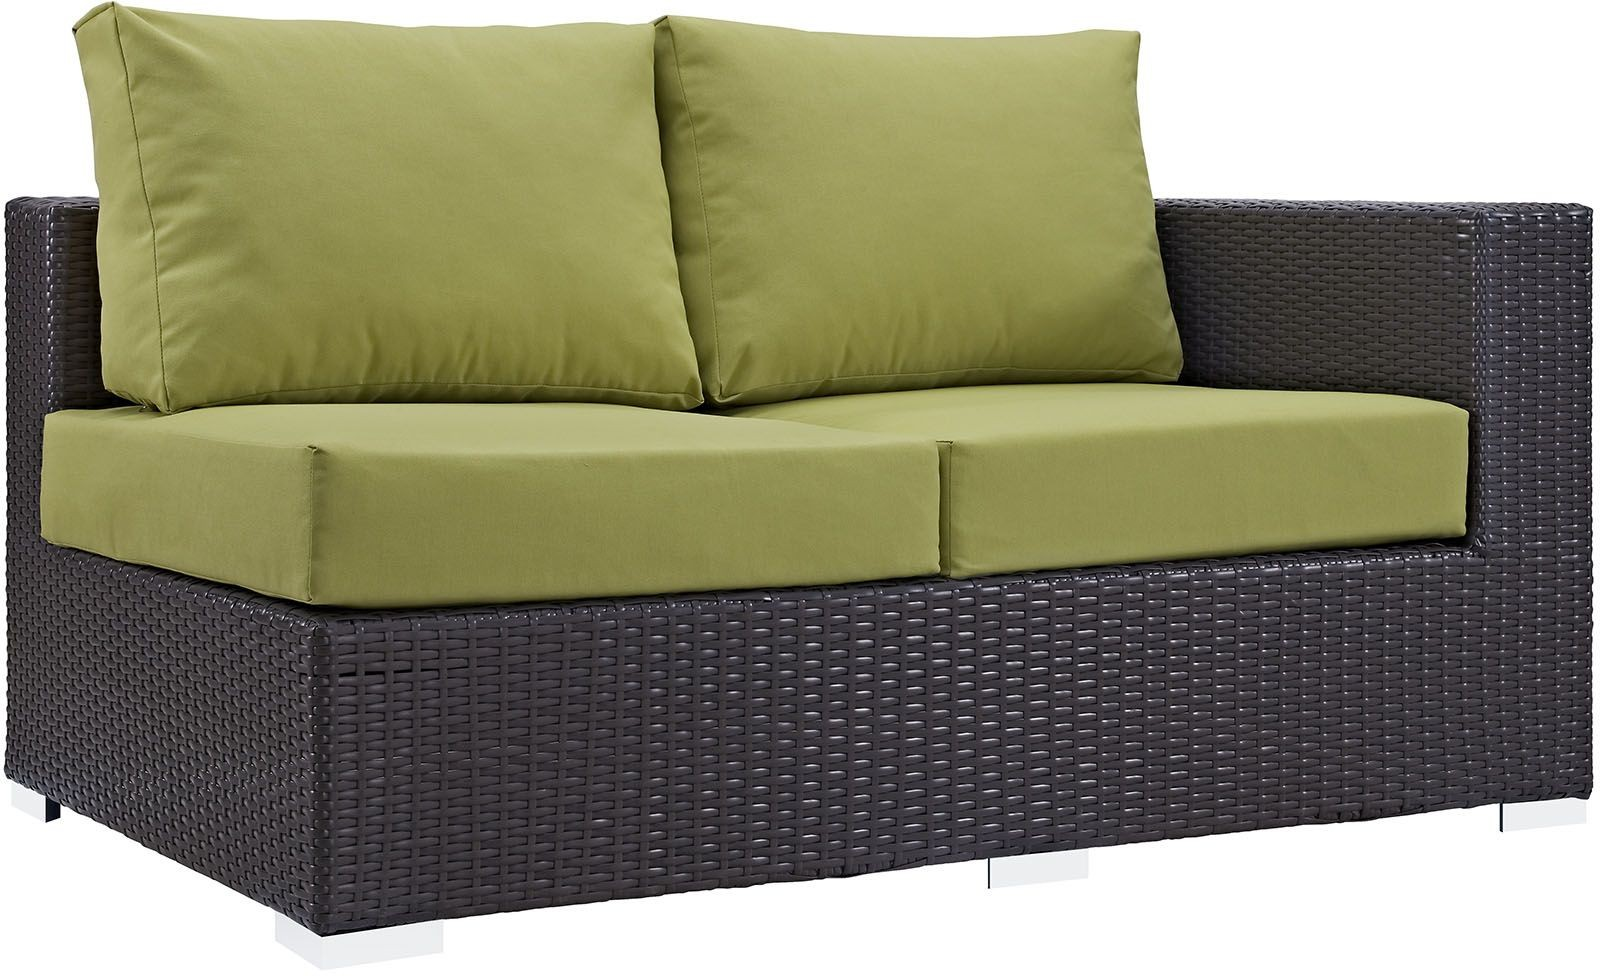 Convene Espresso Peridot Outdoor Patio Raf Loveseat From Renegade Coleman Furniture